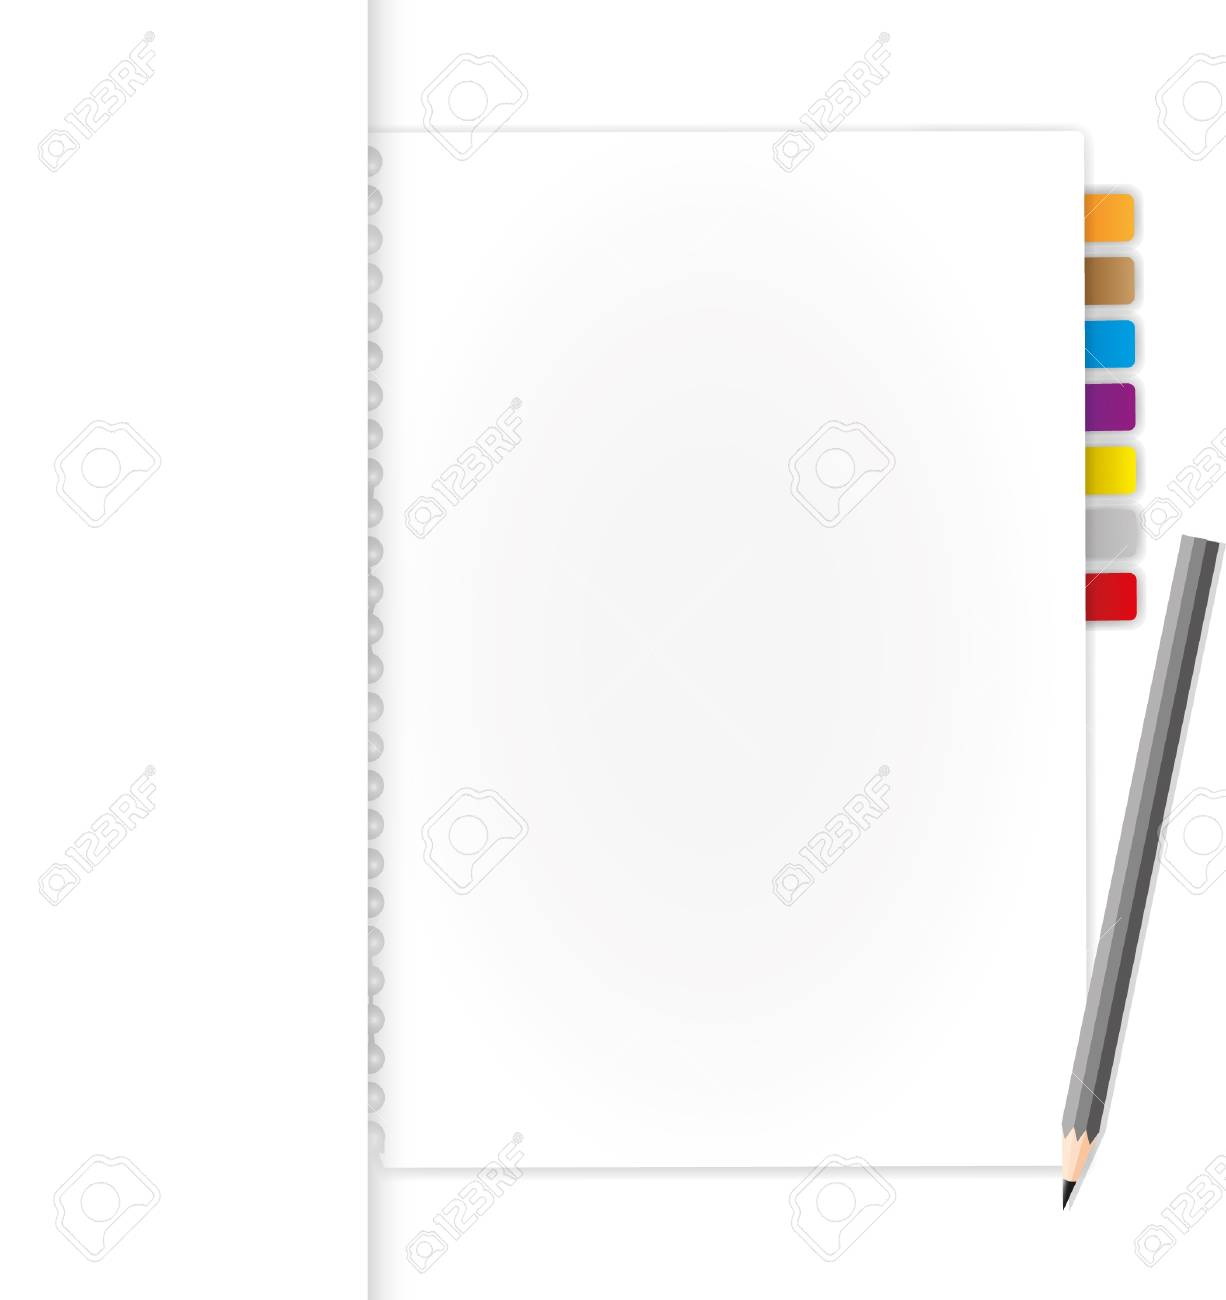 Blank document in folder and pencil. Stock Vector - 11804273